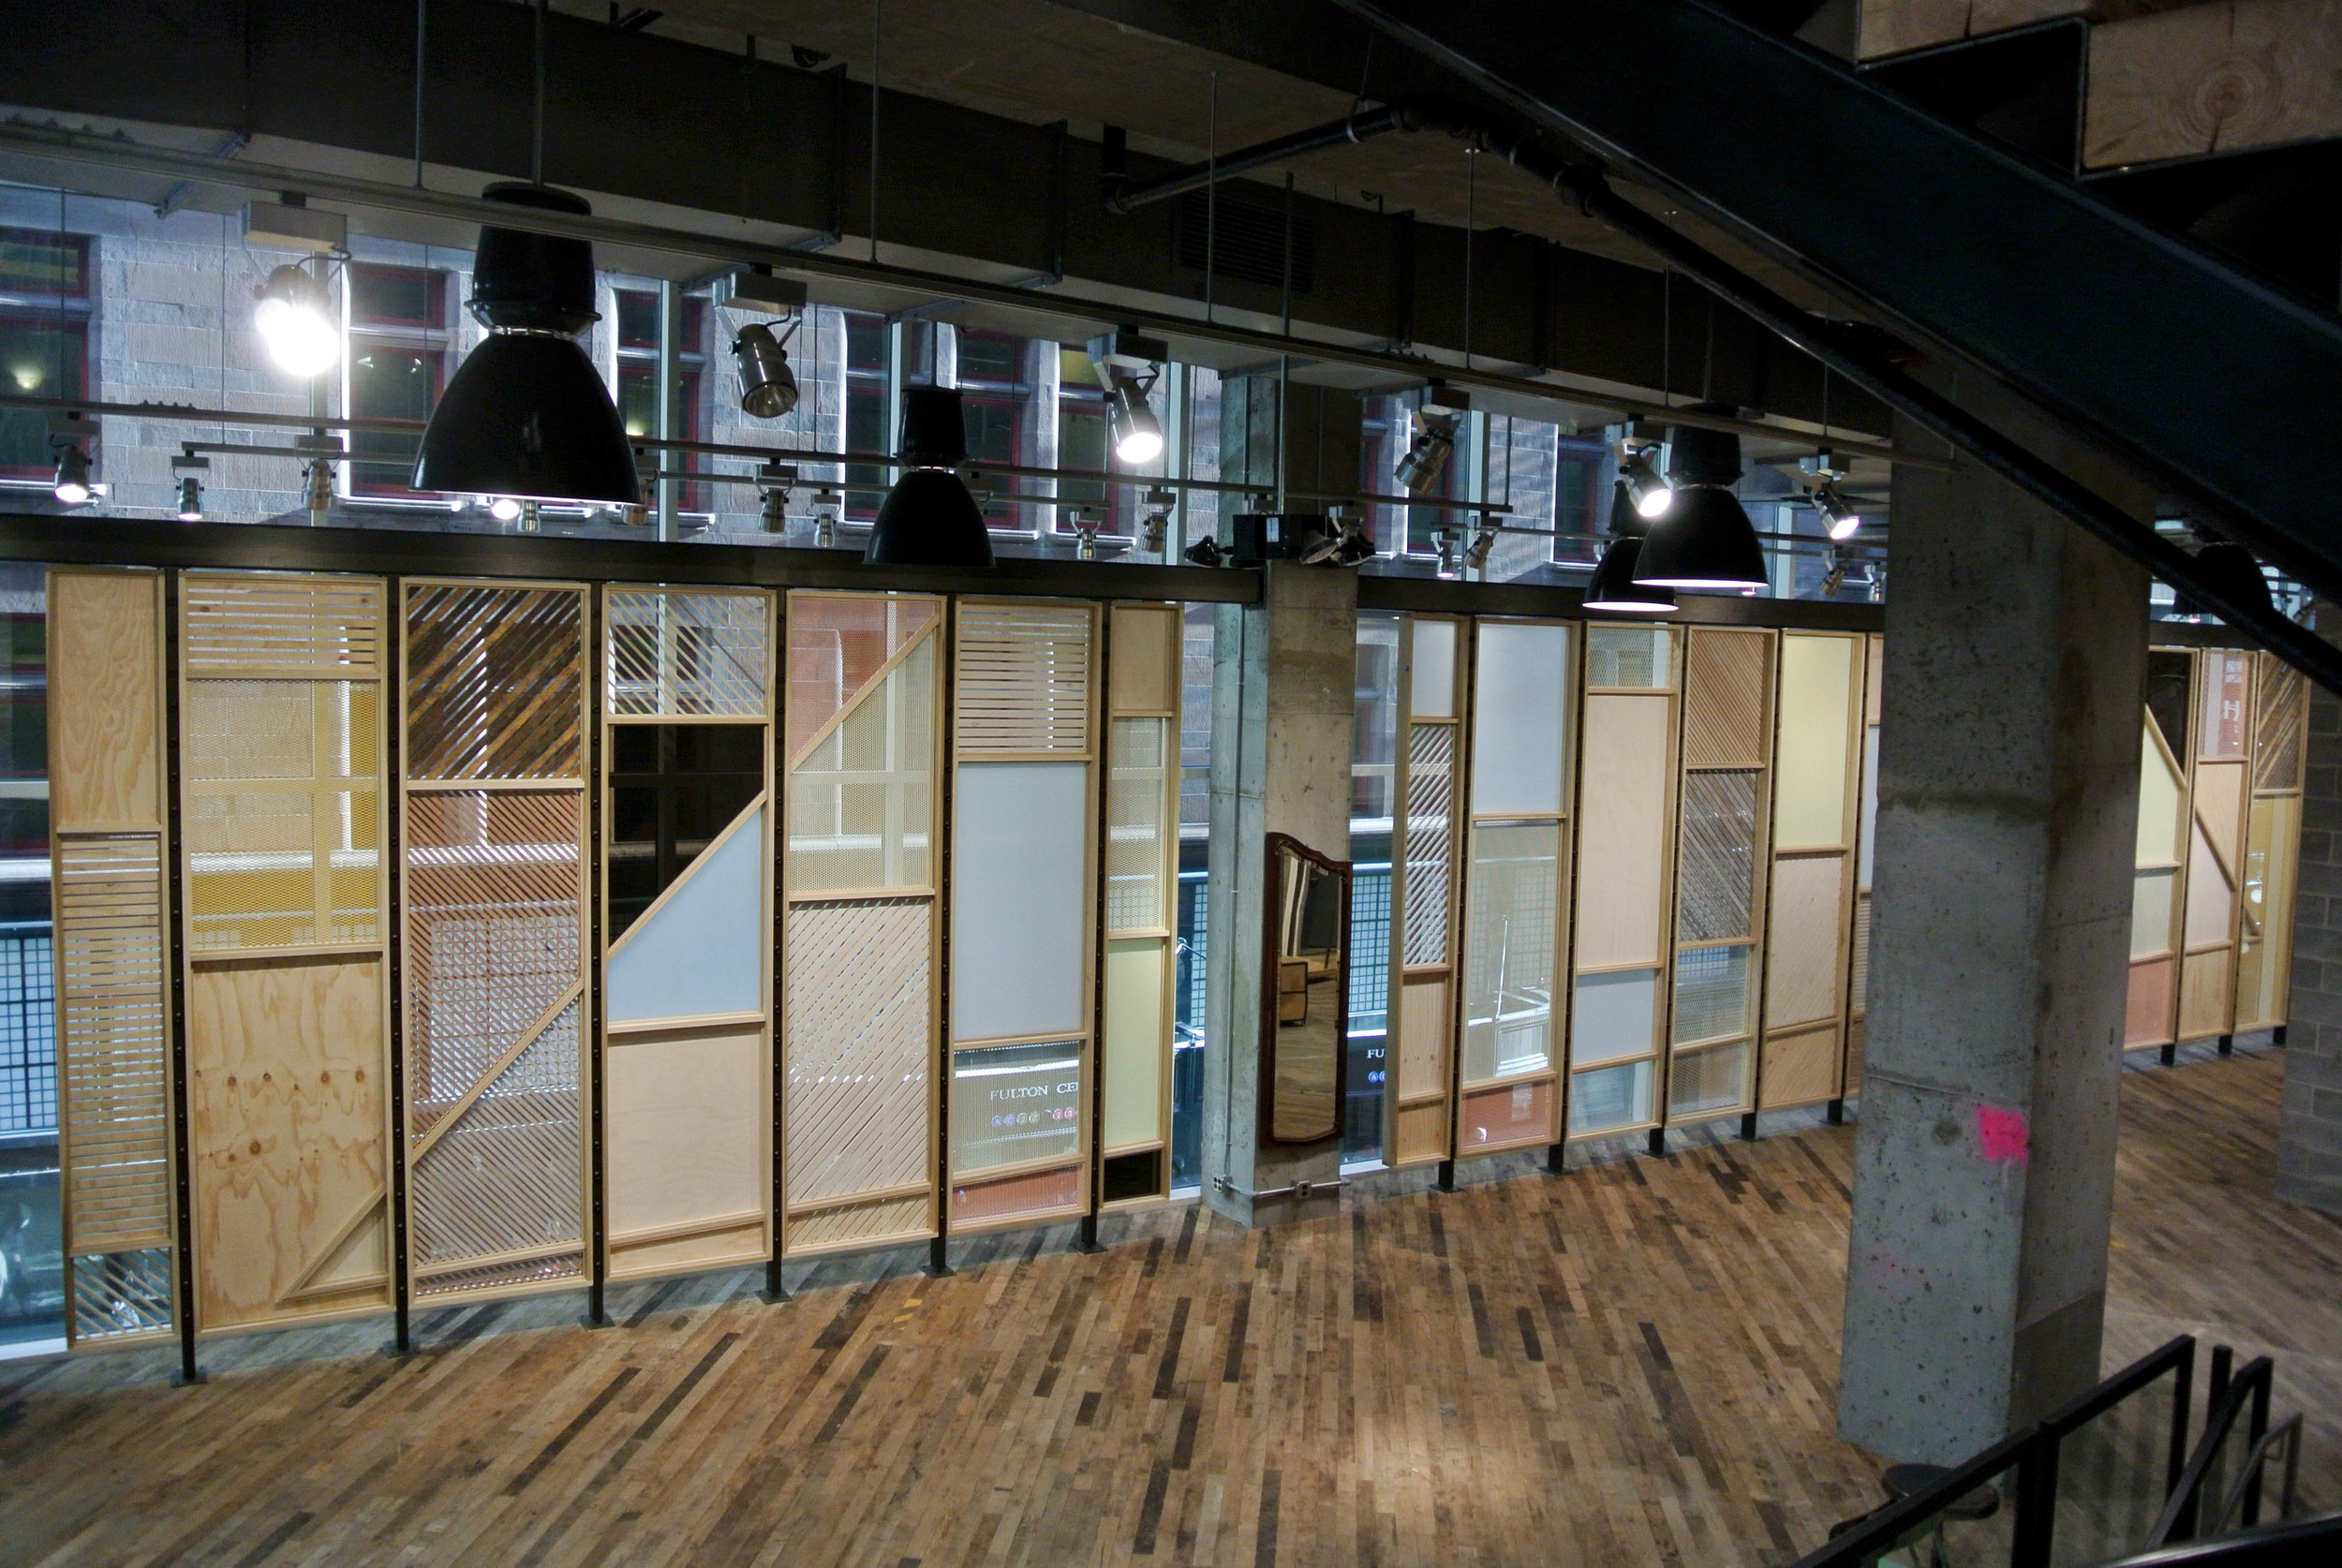 For Urban Outfitters @ 182 Broadway. Collaborators: Daniel St.Croix, et al.